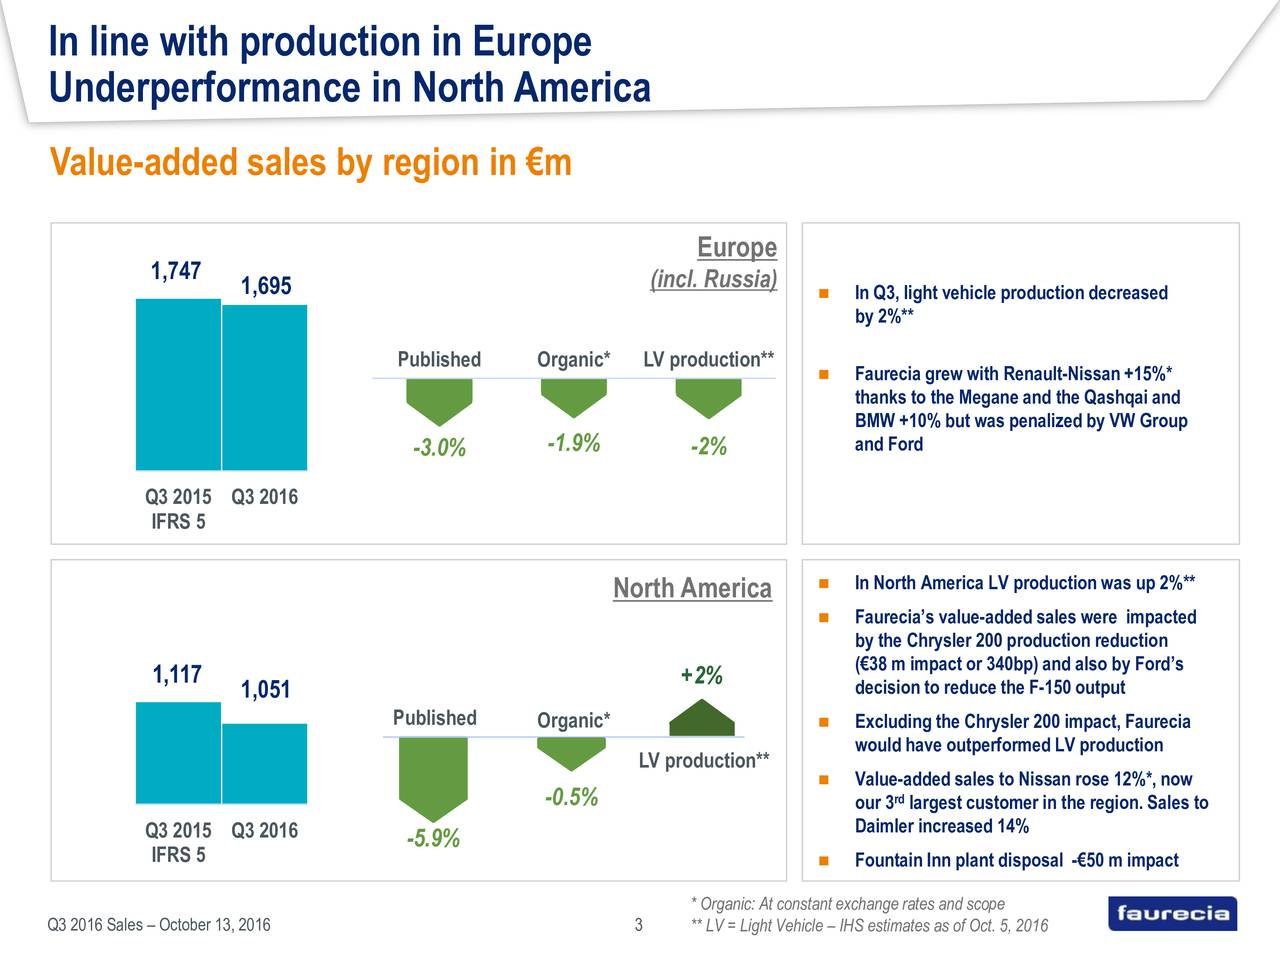 Underperformance in NorthAmerica Value-added sales by region in m Europe 1,747 (incl. Russia) 1 800 1,695  In Q3, light vehicle production decreased by 2%** 1 300 Published Organic* LV production** 0  Faurecia grew with Renault-Nissan +15%* thanks to the Megane and the Qashqai and 800 -5 BMW +10% but was penalizedby VW Group -3.0% -1.9% -2% and Ford 300 -10 Q3 2015 Q3 2016 -15 IFRS 5 -20 1 500 -25 North America  In North America LV production was up 2%** 1 400 -30  Faurecias value-addedsales were impacted 1 300 by the Chrysler 200 production reduction -35 (38 m impact or 340bp) and also by Fords 1 200 1,117 +2% 1 100 1,051 decision to reduce the F-150 output Published Organic*  Excluding the Chrysler 200 impact, Faurecia 1 000 would have outperformed LV production LV production** 900  Value-added sales to Nissan rose 12%*, now 800 -0.5% our 3 largest customer in the region. Sales to Q3 2015 Q3 2016 Daimler increased 14% IFRS 5 -5.9% Fountain Inn plant disposal -50 m impact * Organic: At constant exchange rates and scope Q3 2016 Sales  October 13, 2016 3 ** LV = Light Vehicle  IHS estimates as of Oct. 5, 2016